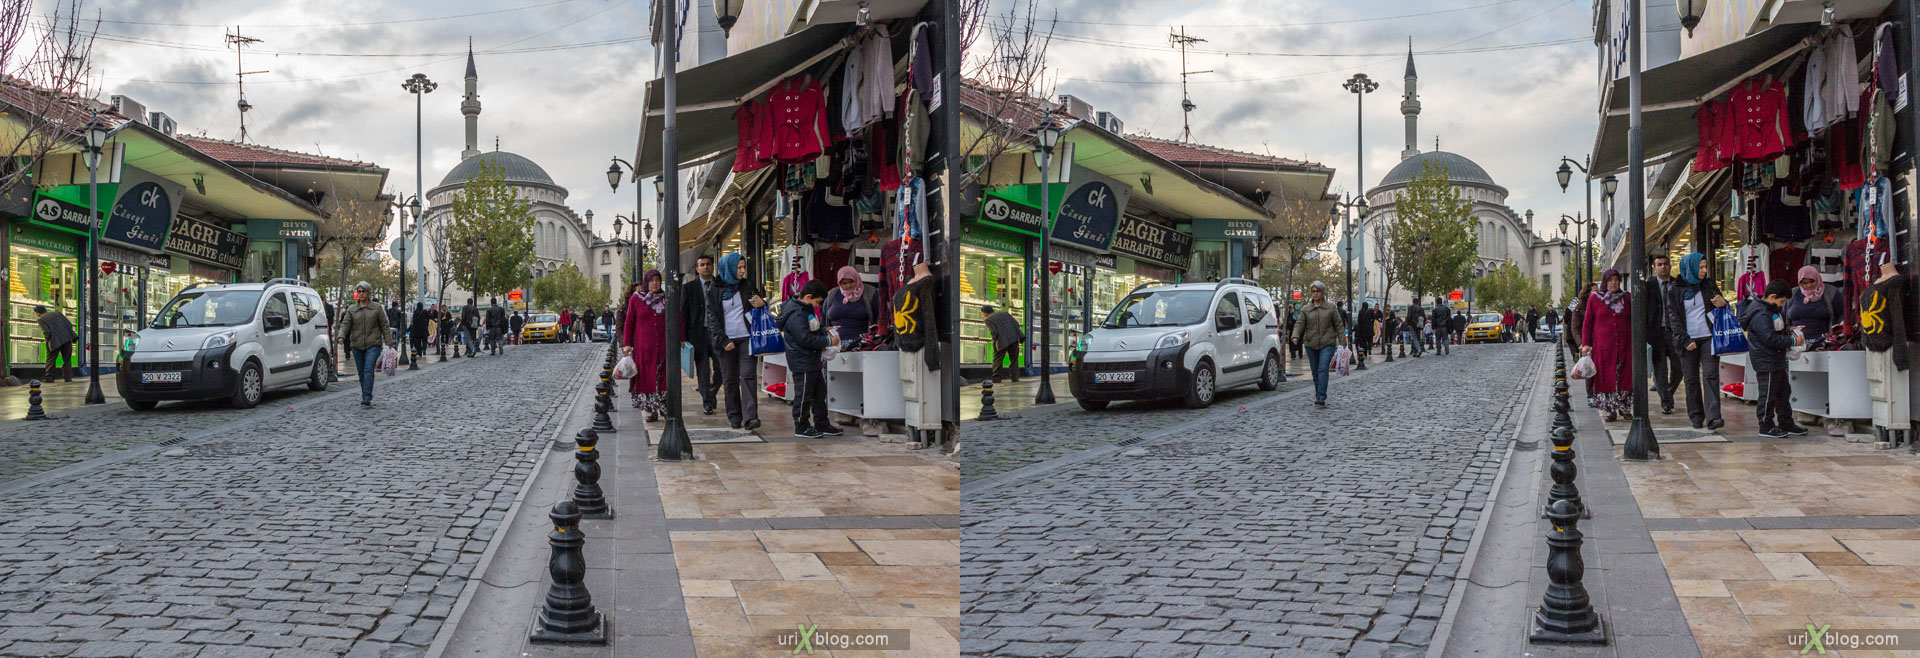 Denizli, Turkey, city, 3D, stereo pair, cross-eyed, crossview, cross view stereo pair, stereoscopic, 2014